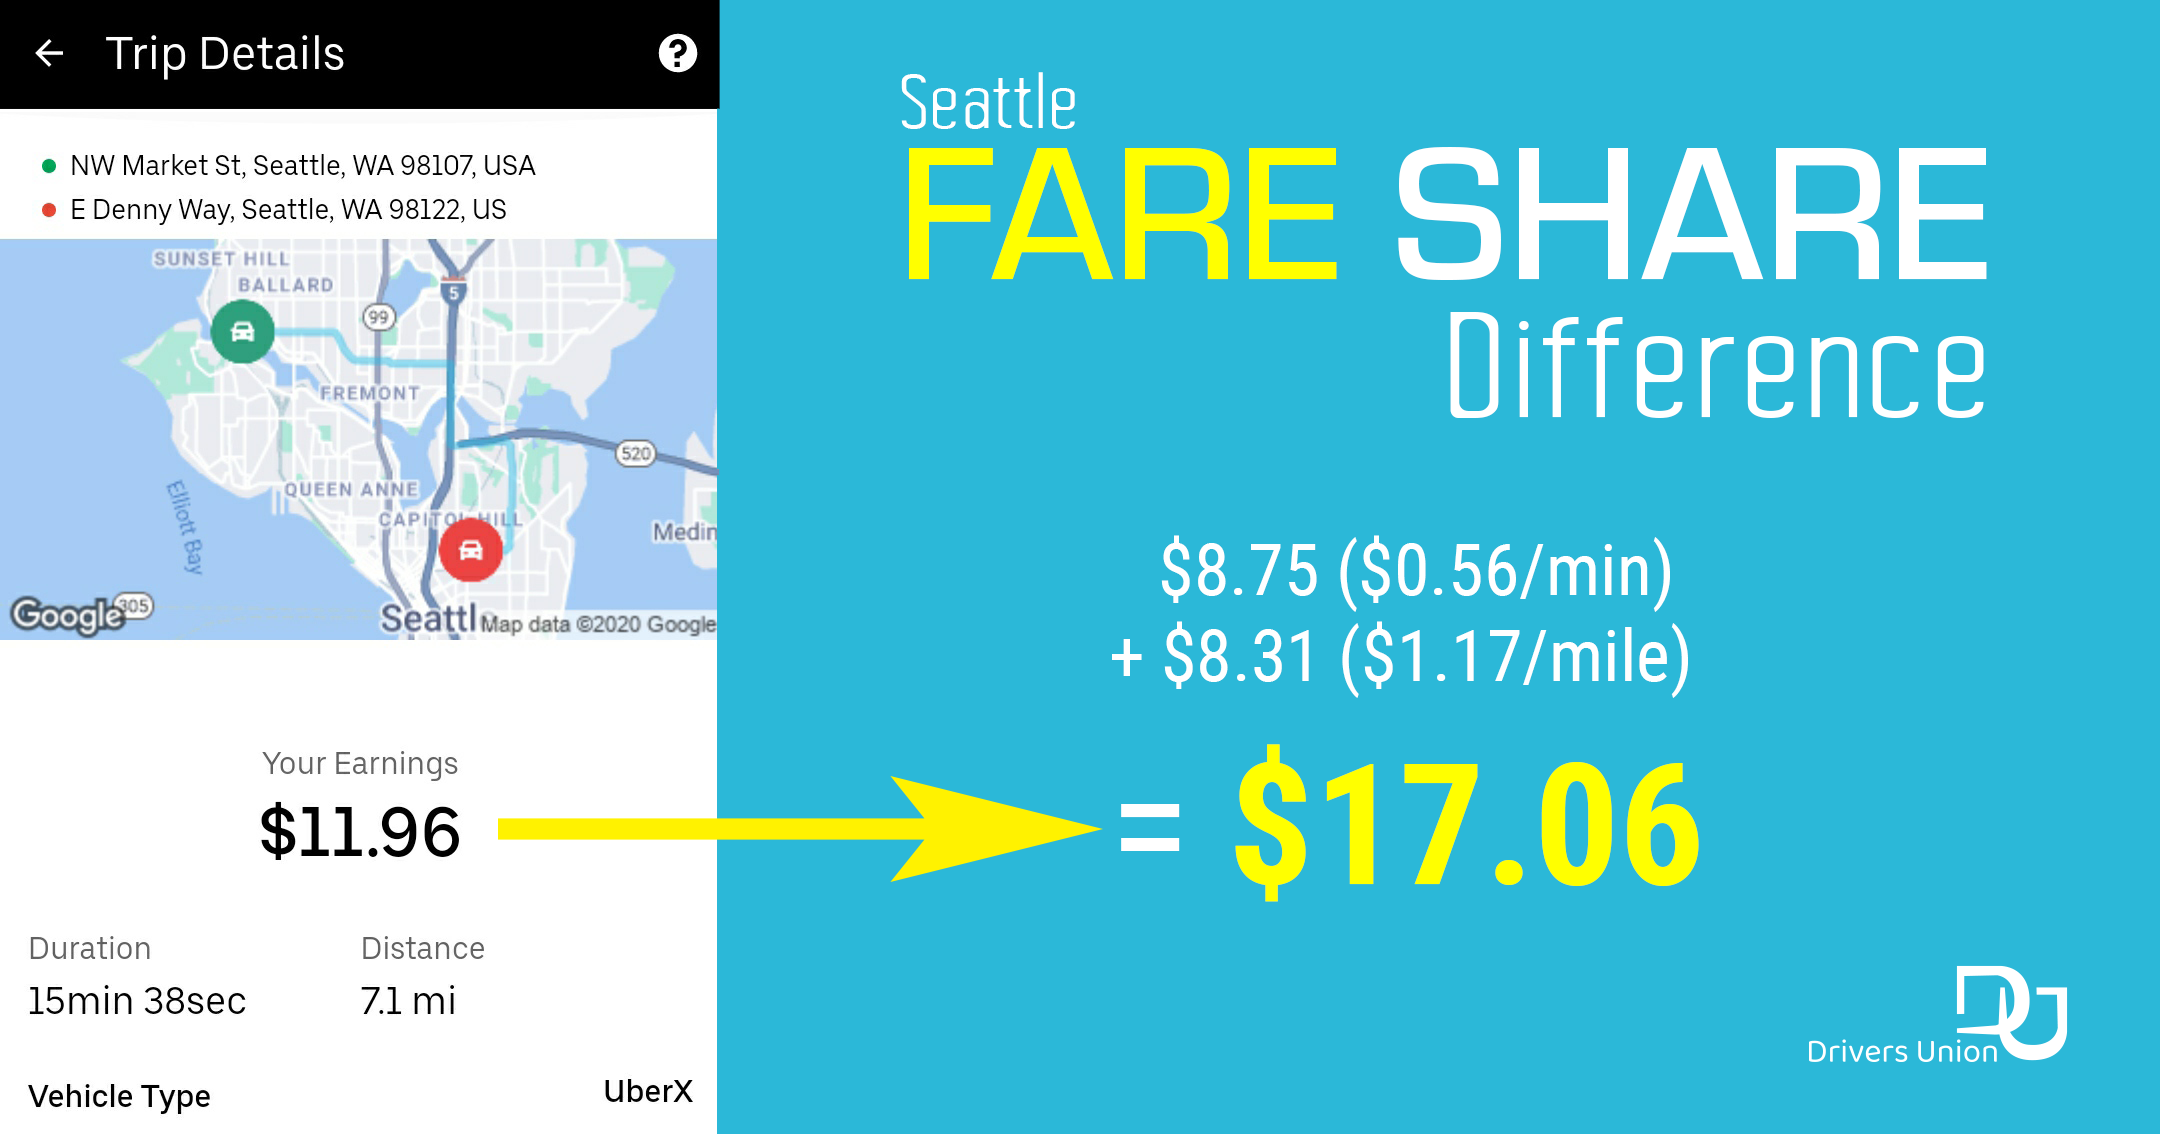 Fare_Share_Difference_1.png